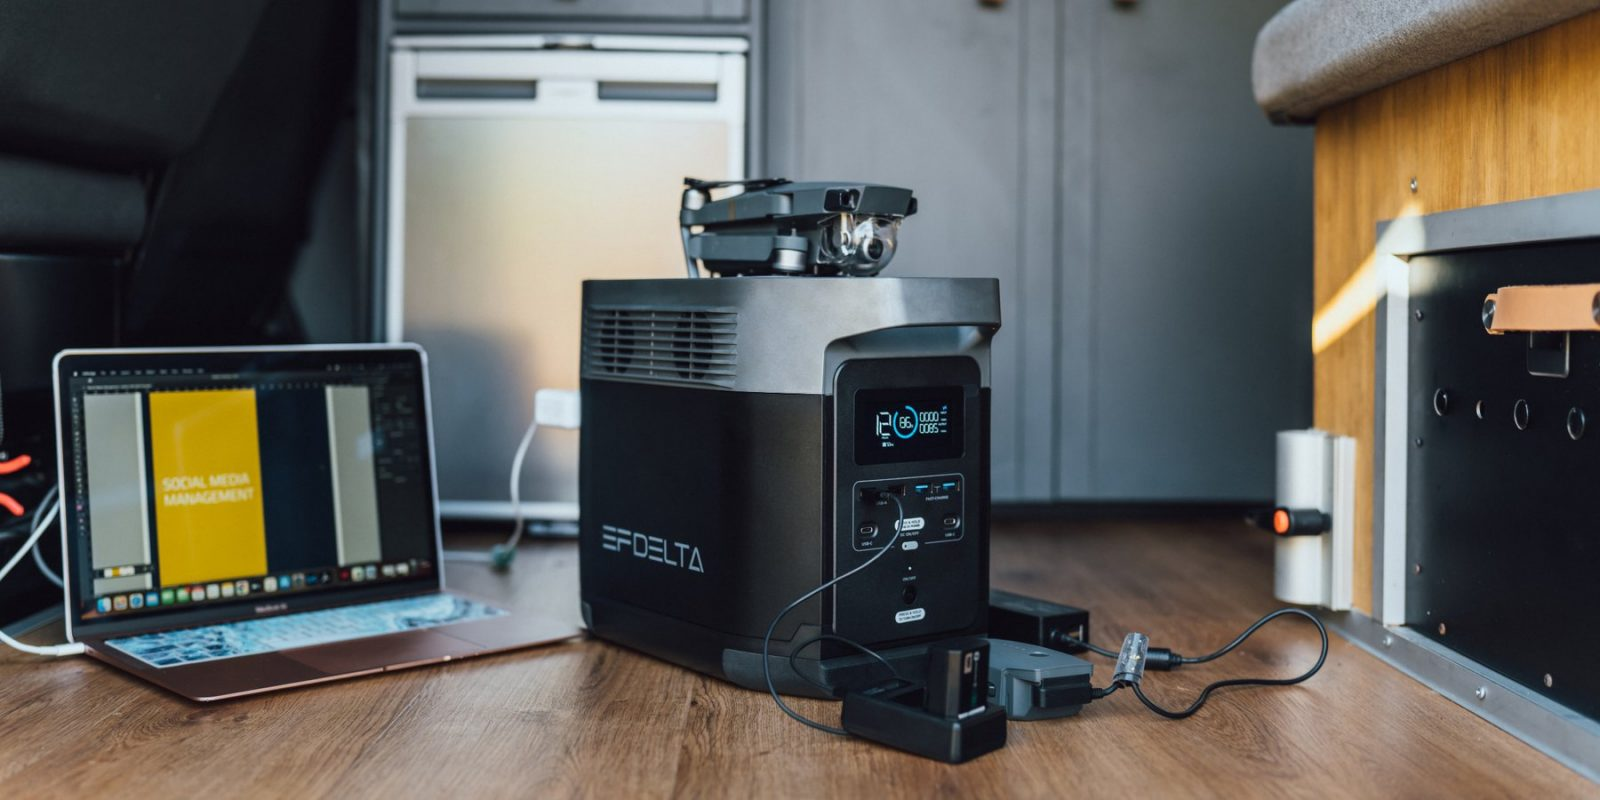 The world's fastest charging portable power stations